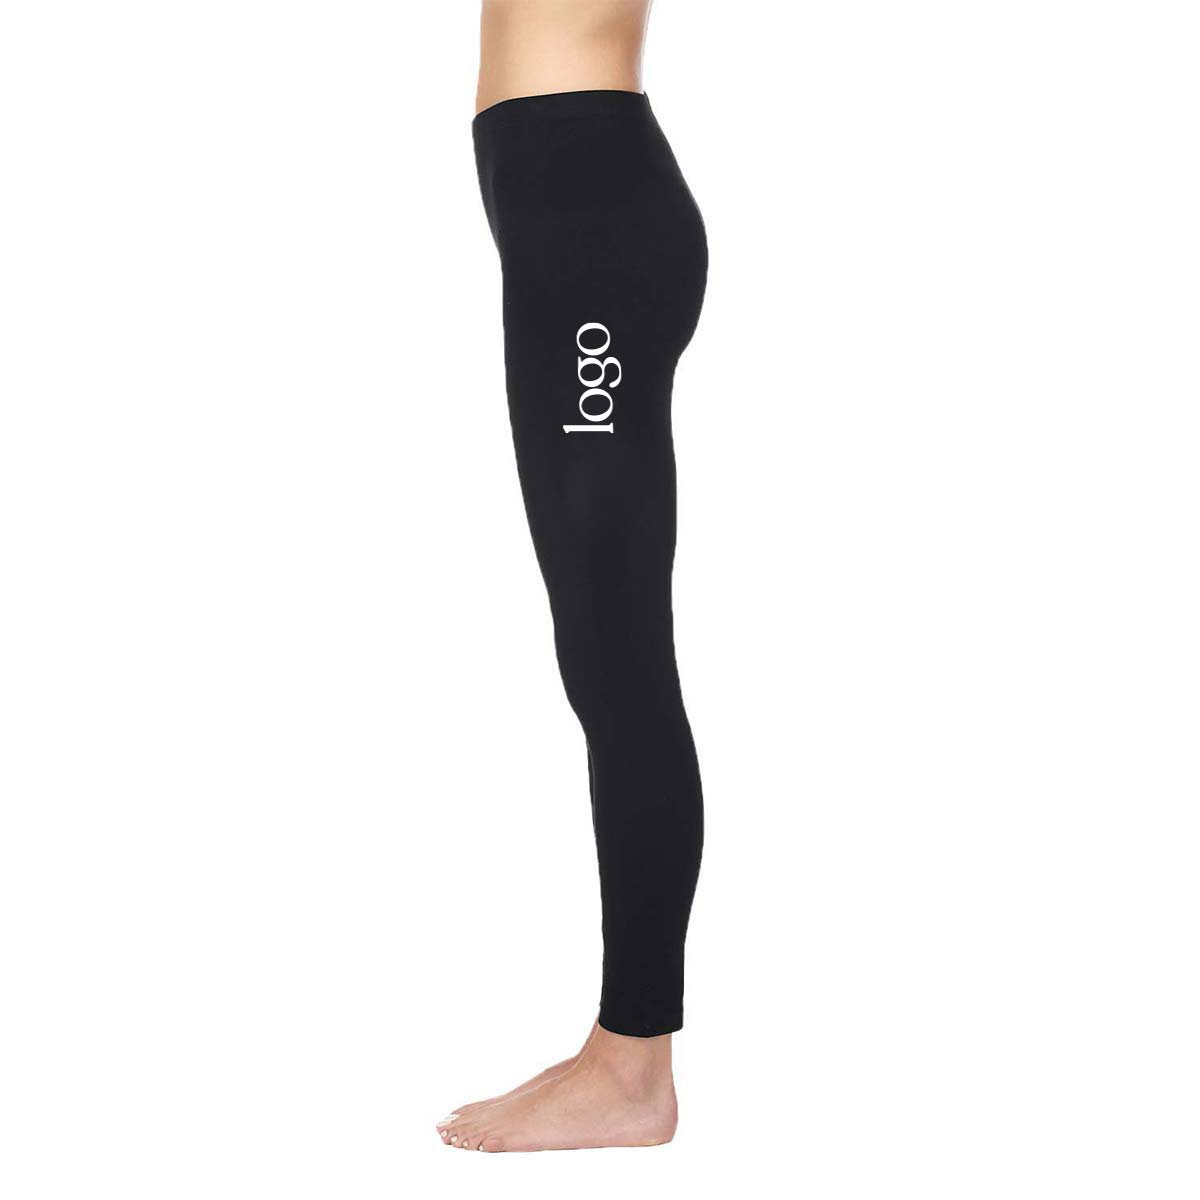 302393 cotton legging one color one location screen